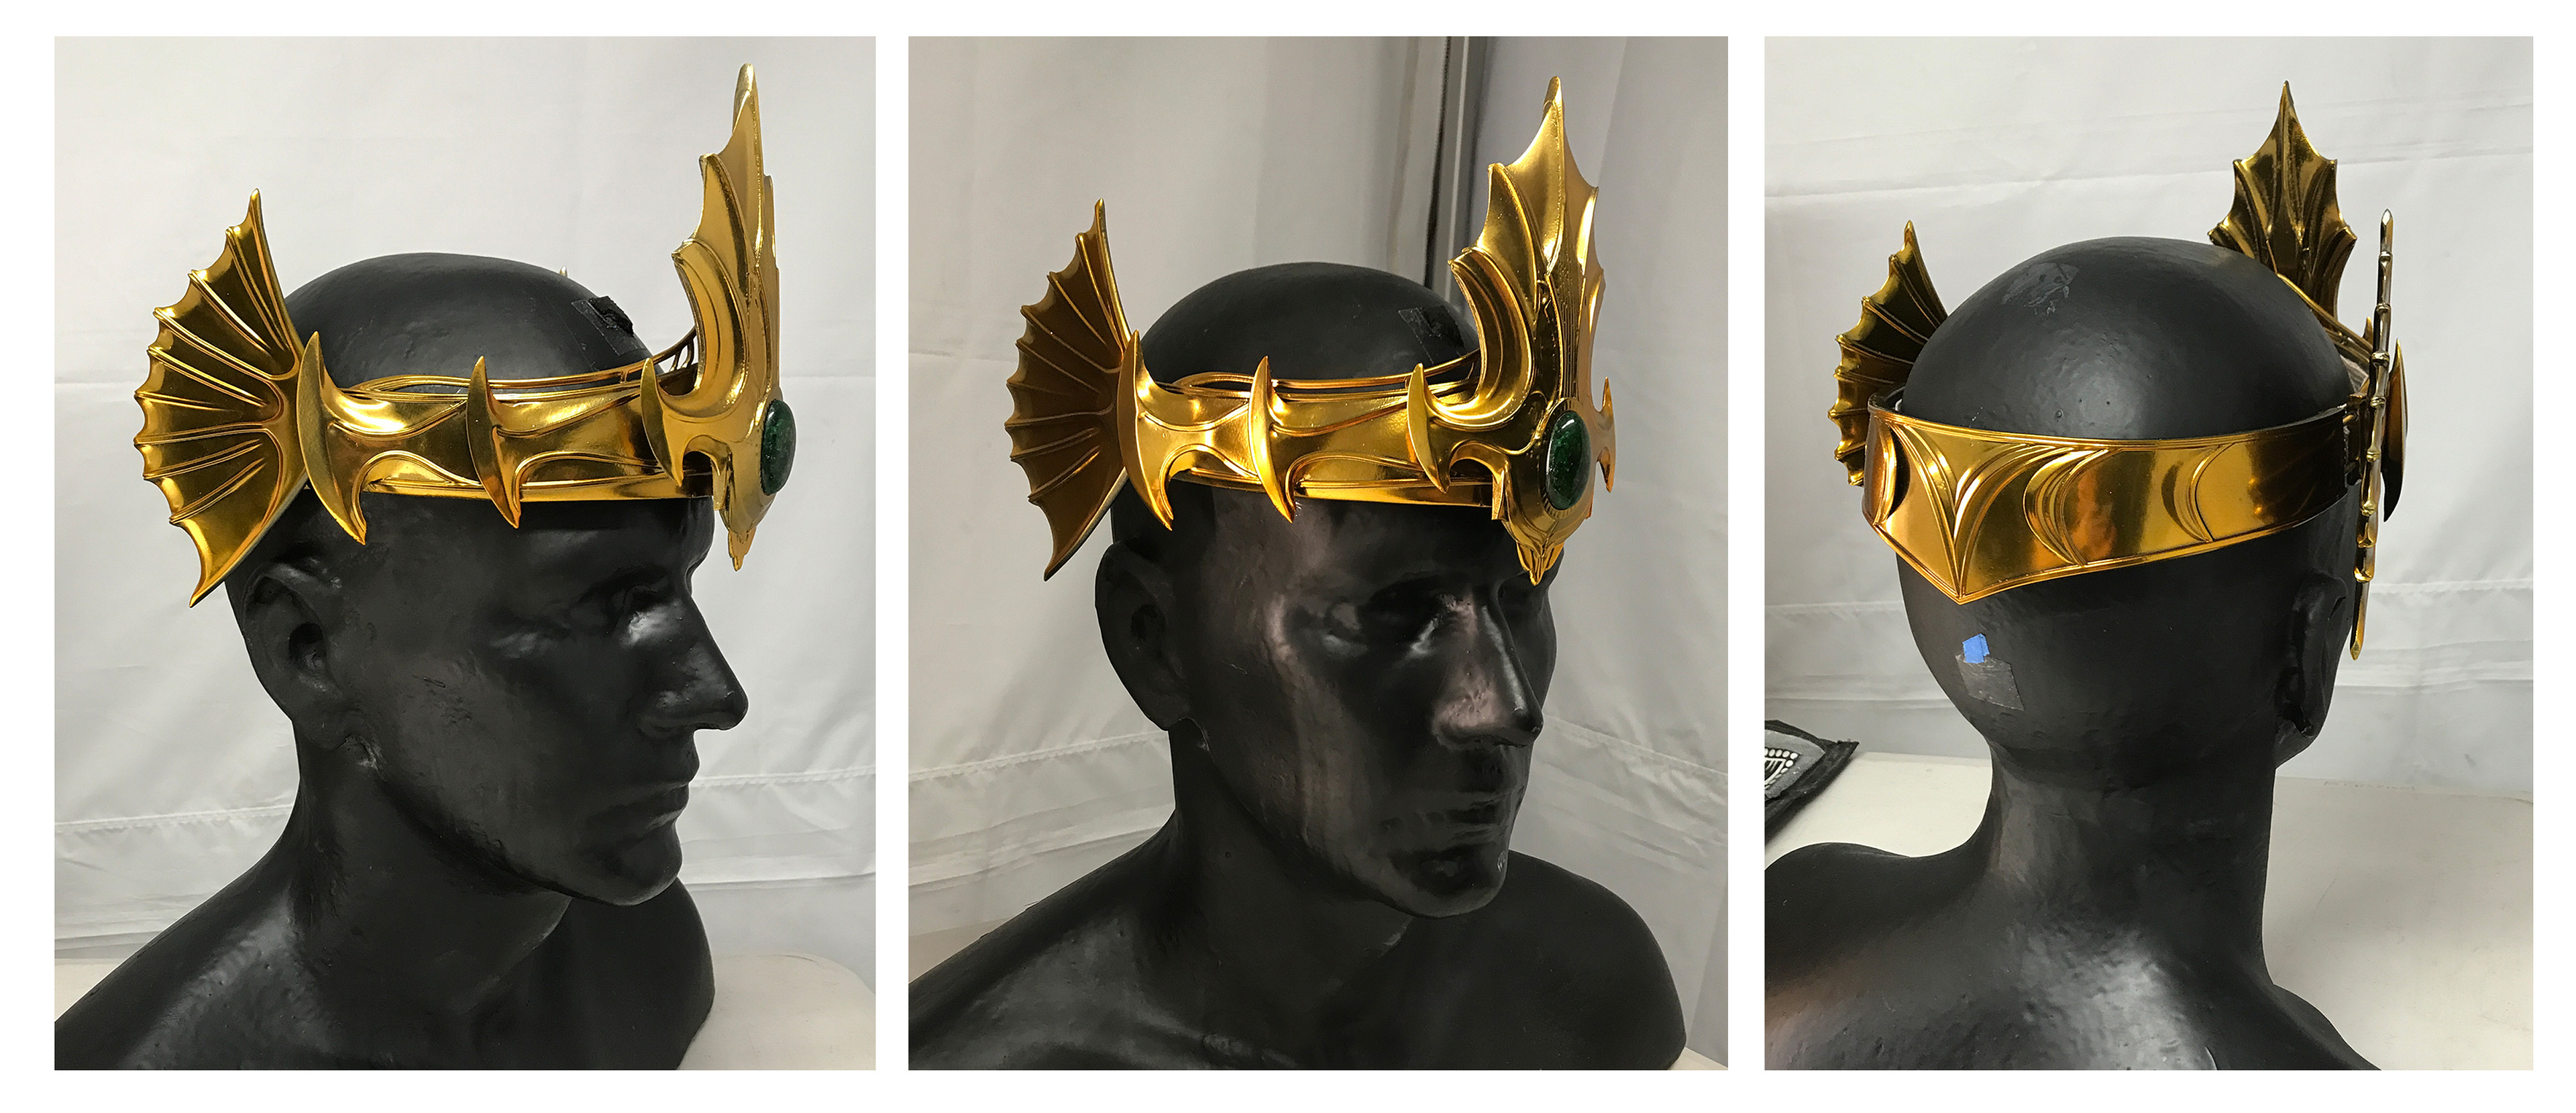 King Orm - crown 3d modelled and 3d printed